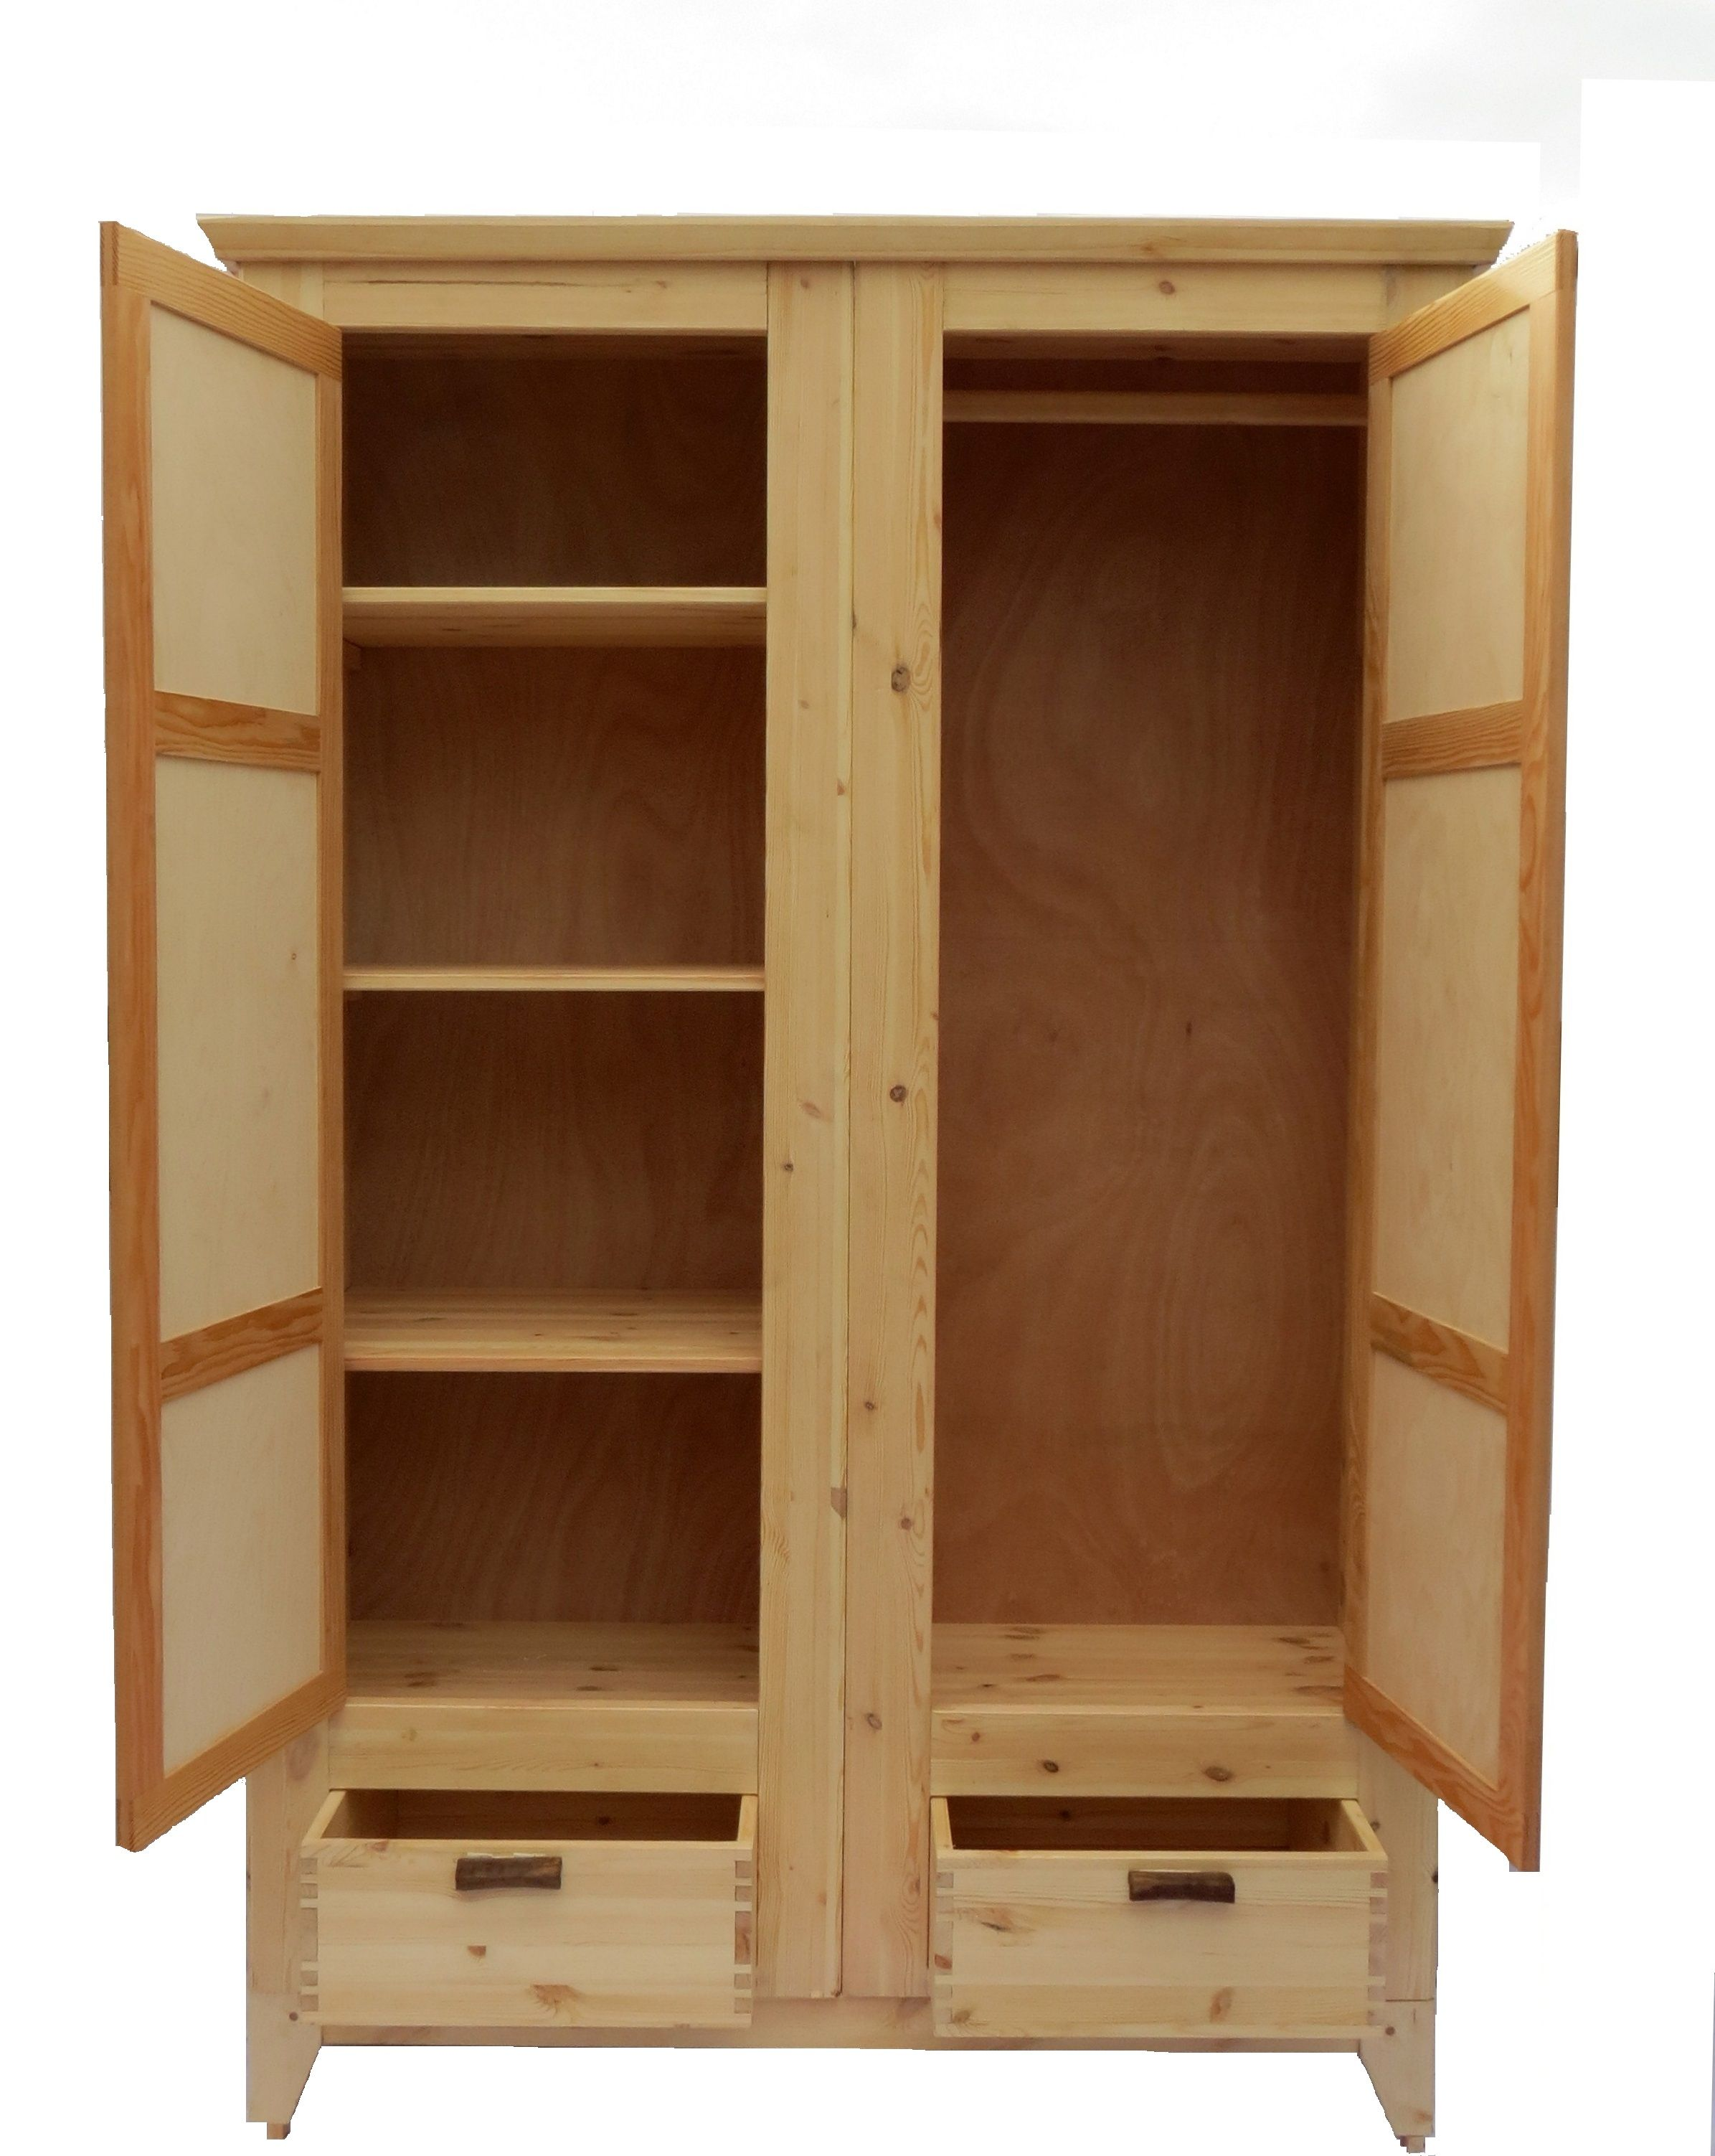 Captivating Clothes Cabinet   Readeru0027s Gallery   Fine Woodworking